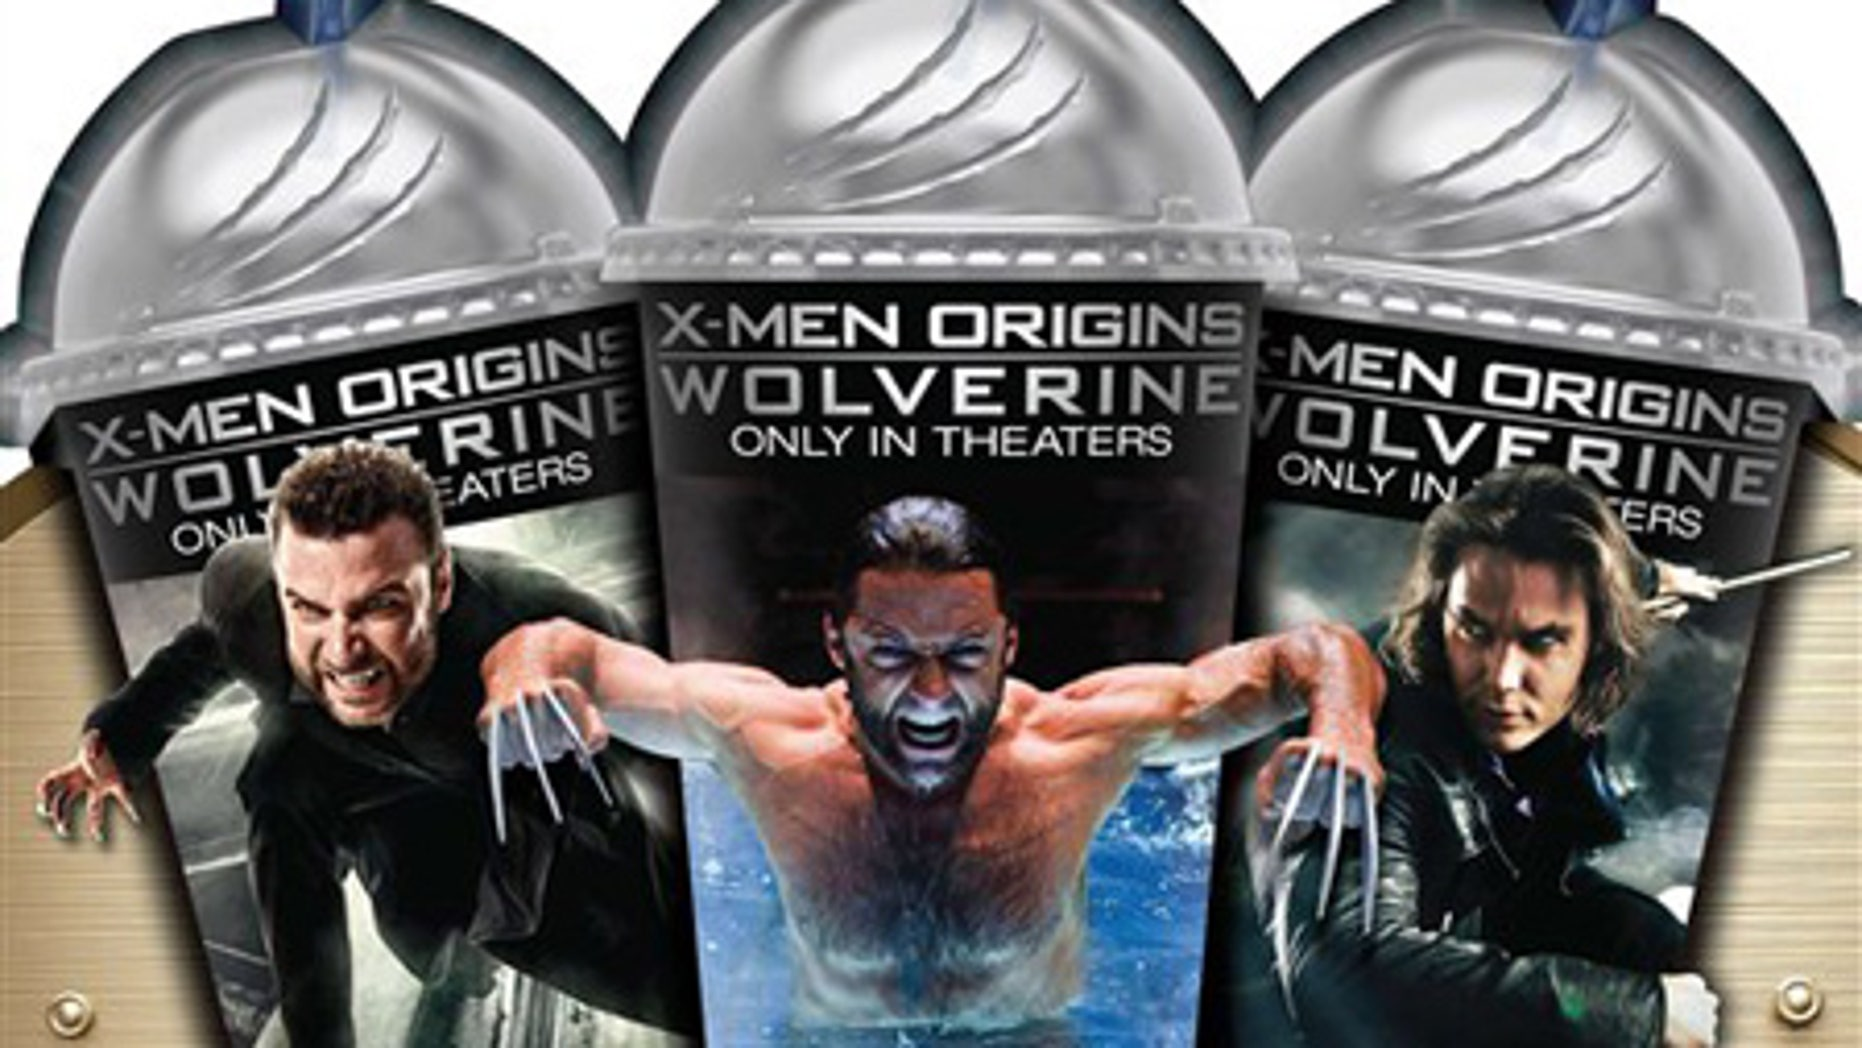 March 31: 7-Eleven created three Slurpee cups as part of the retailer's April promotion of X-Men Origins: Wolverine.